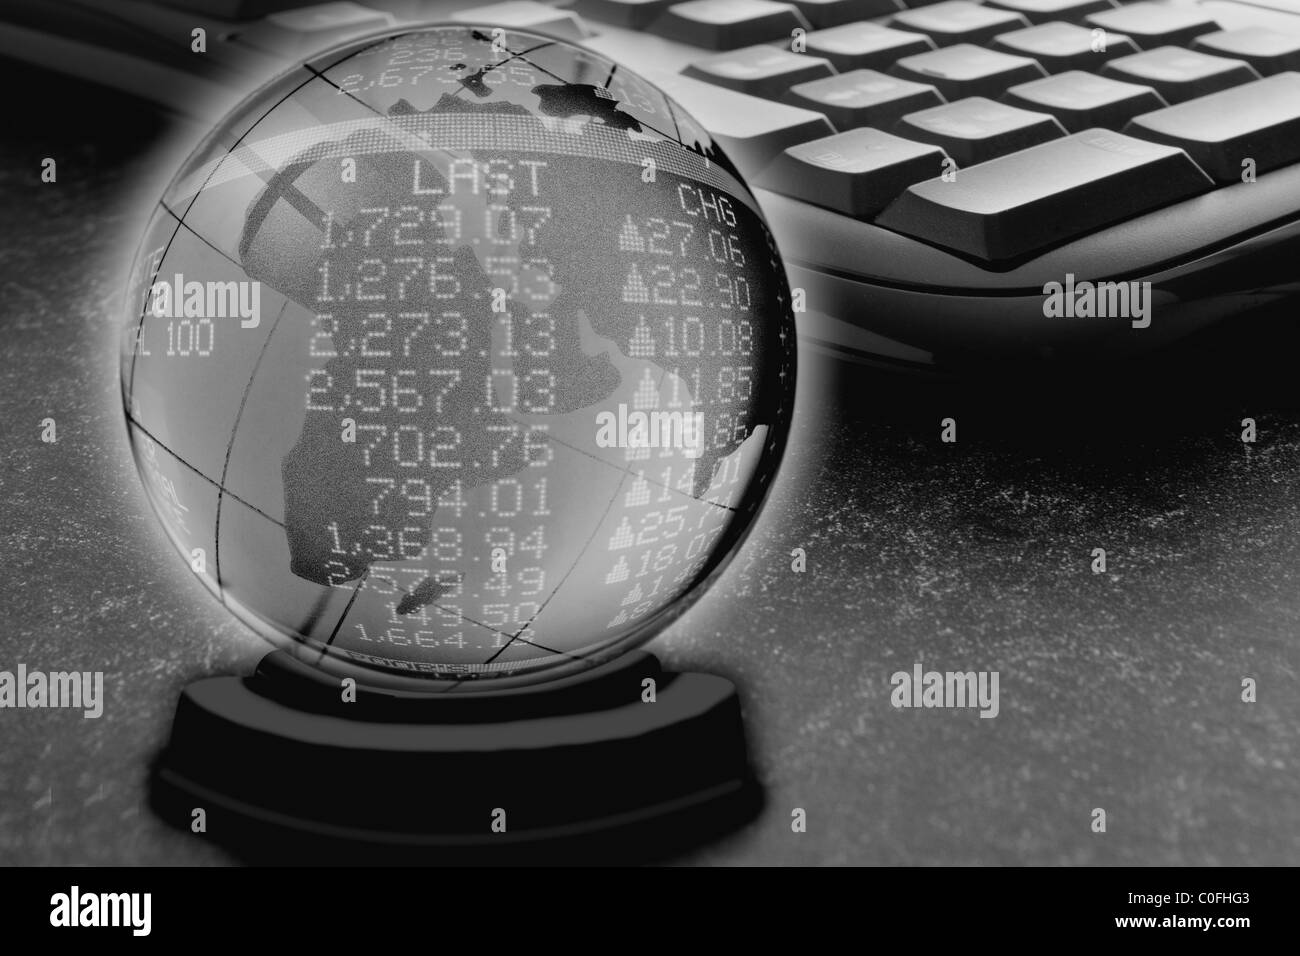 Crystal ball containing a world globe overlaid with a stock market tally board portraying the concept of global - Stock Image